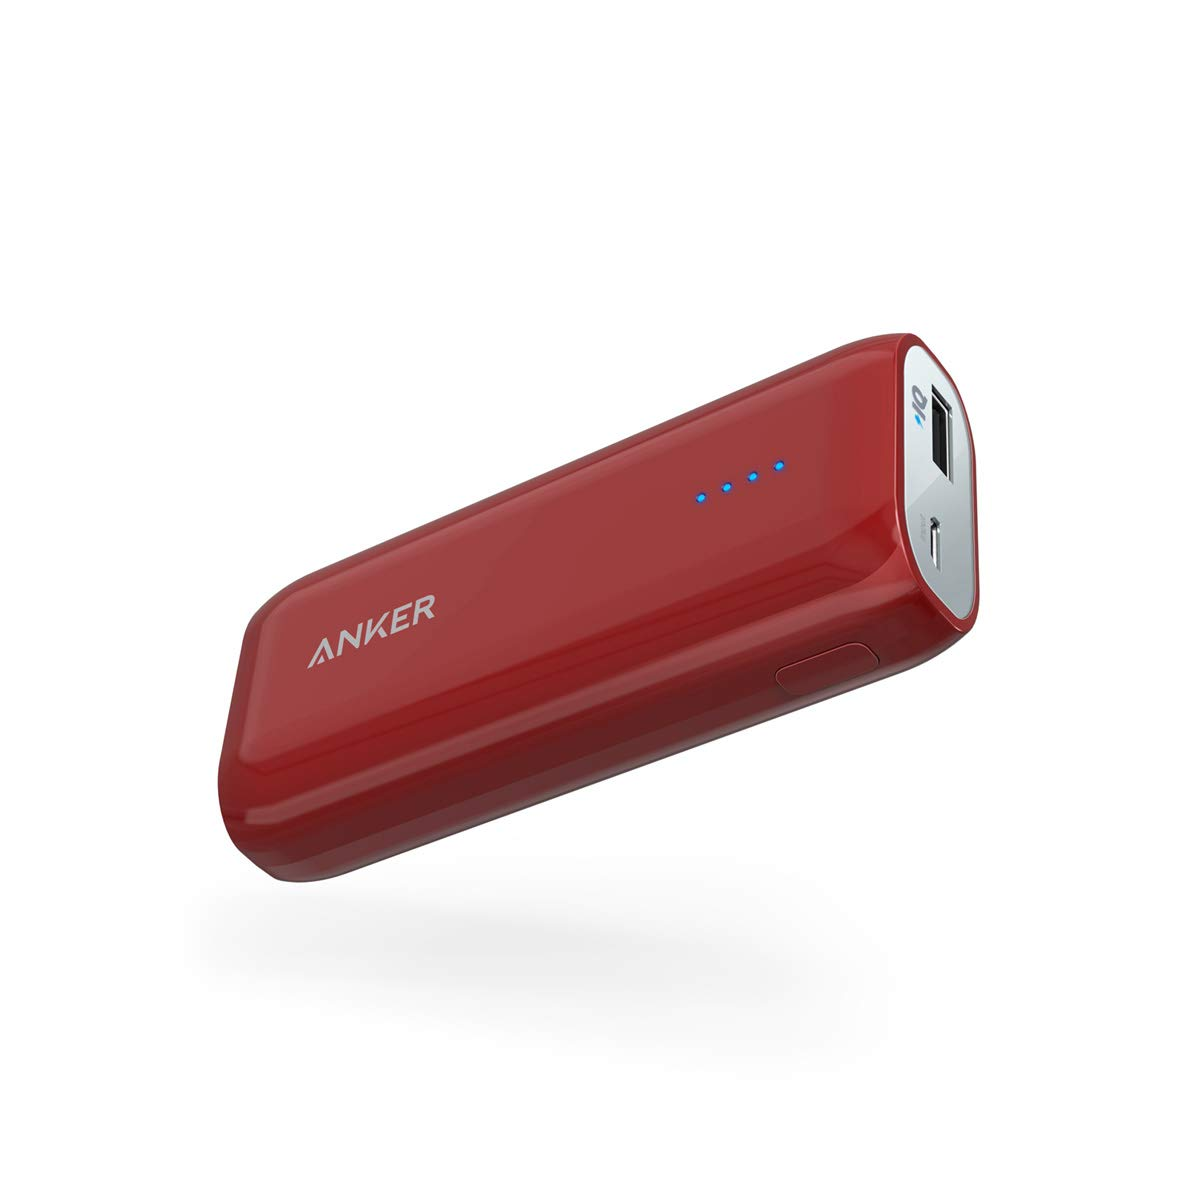 Anker [Upgraded to 6700mAh] Astro E1 Candy-Bar Sized Ultra Compact Portable Charger, External Battery Power Bank, with High-Speed Charging PowerIQ Technology AK-A1211095